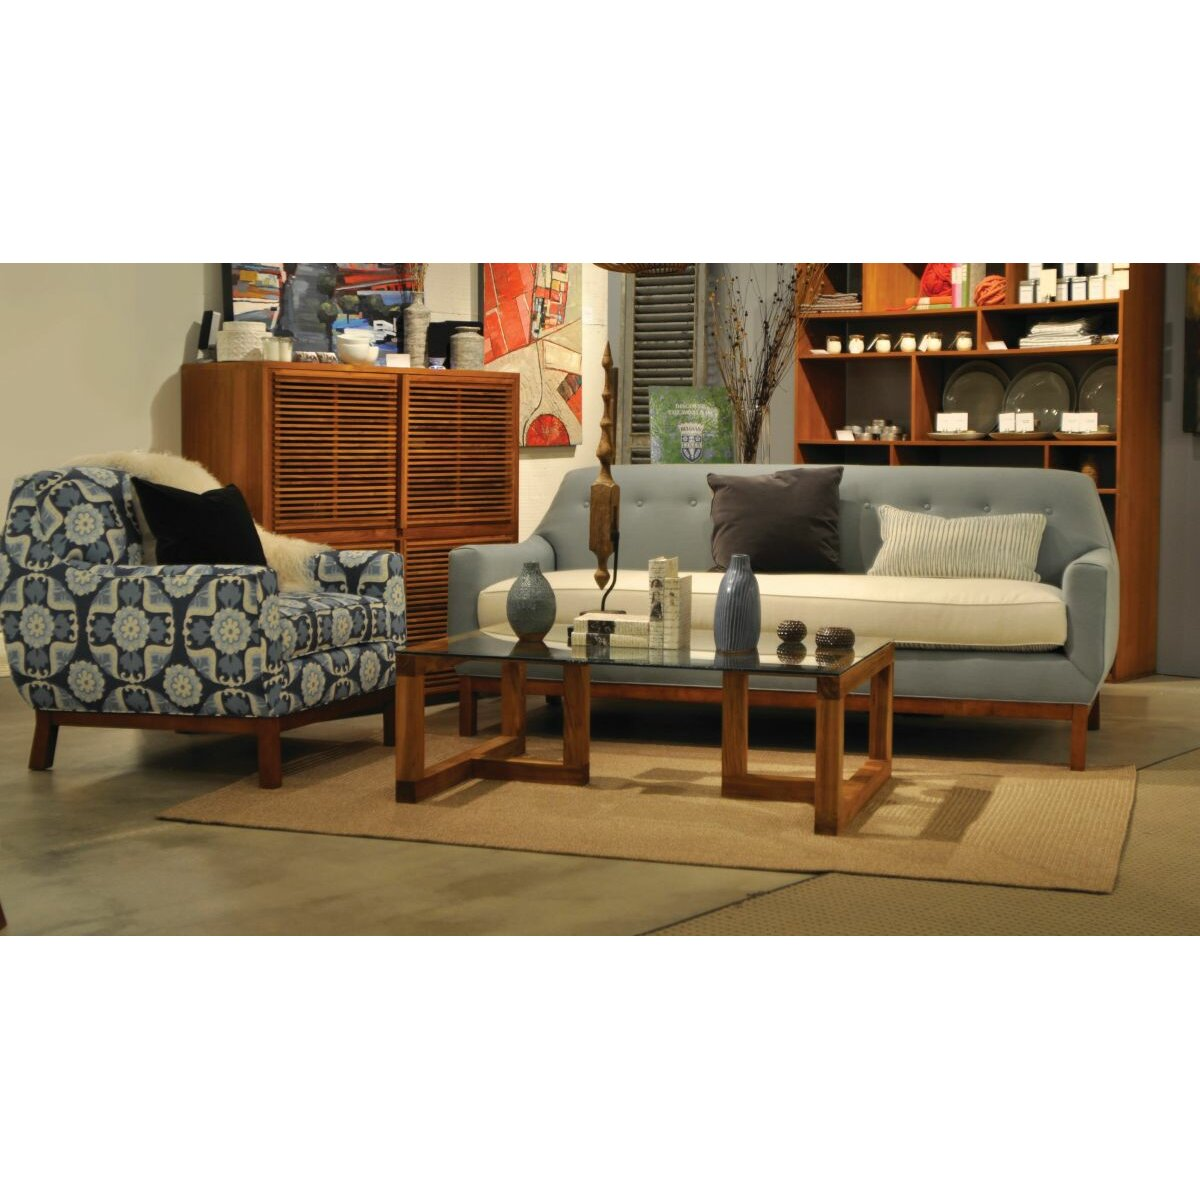 Durable Rug For Living Room With Dog